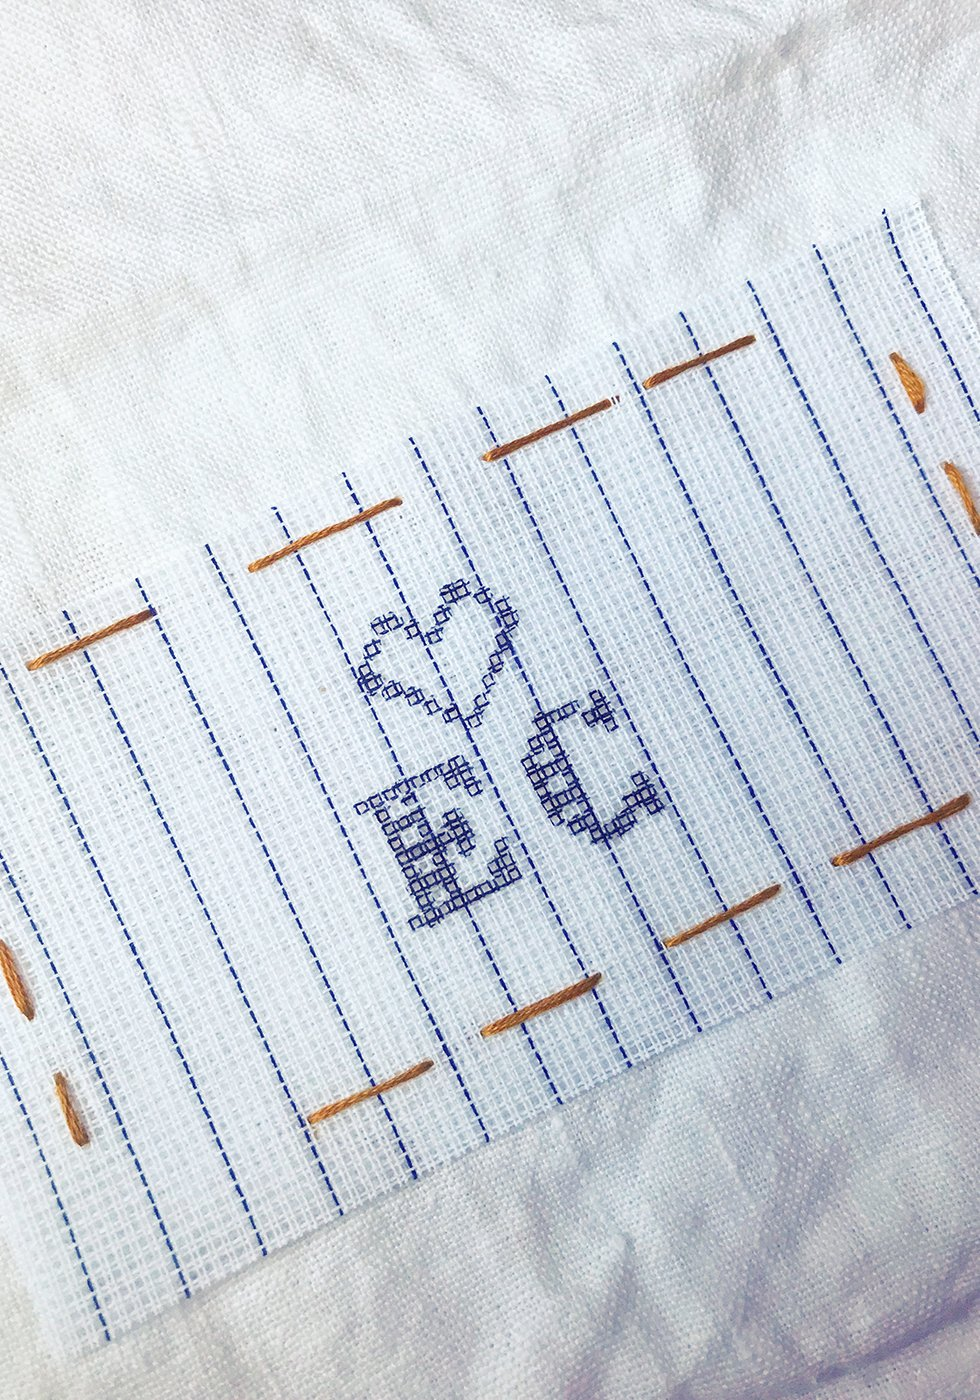 crossstitch5